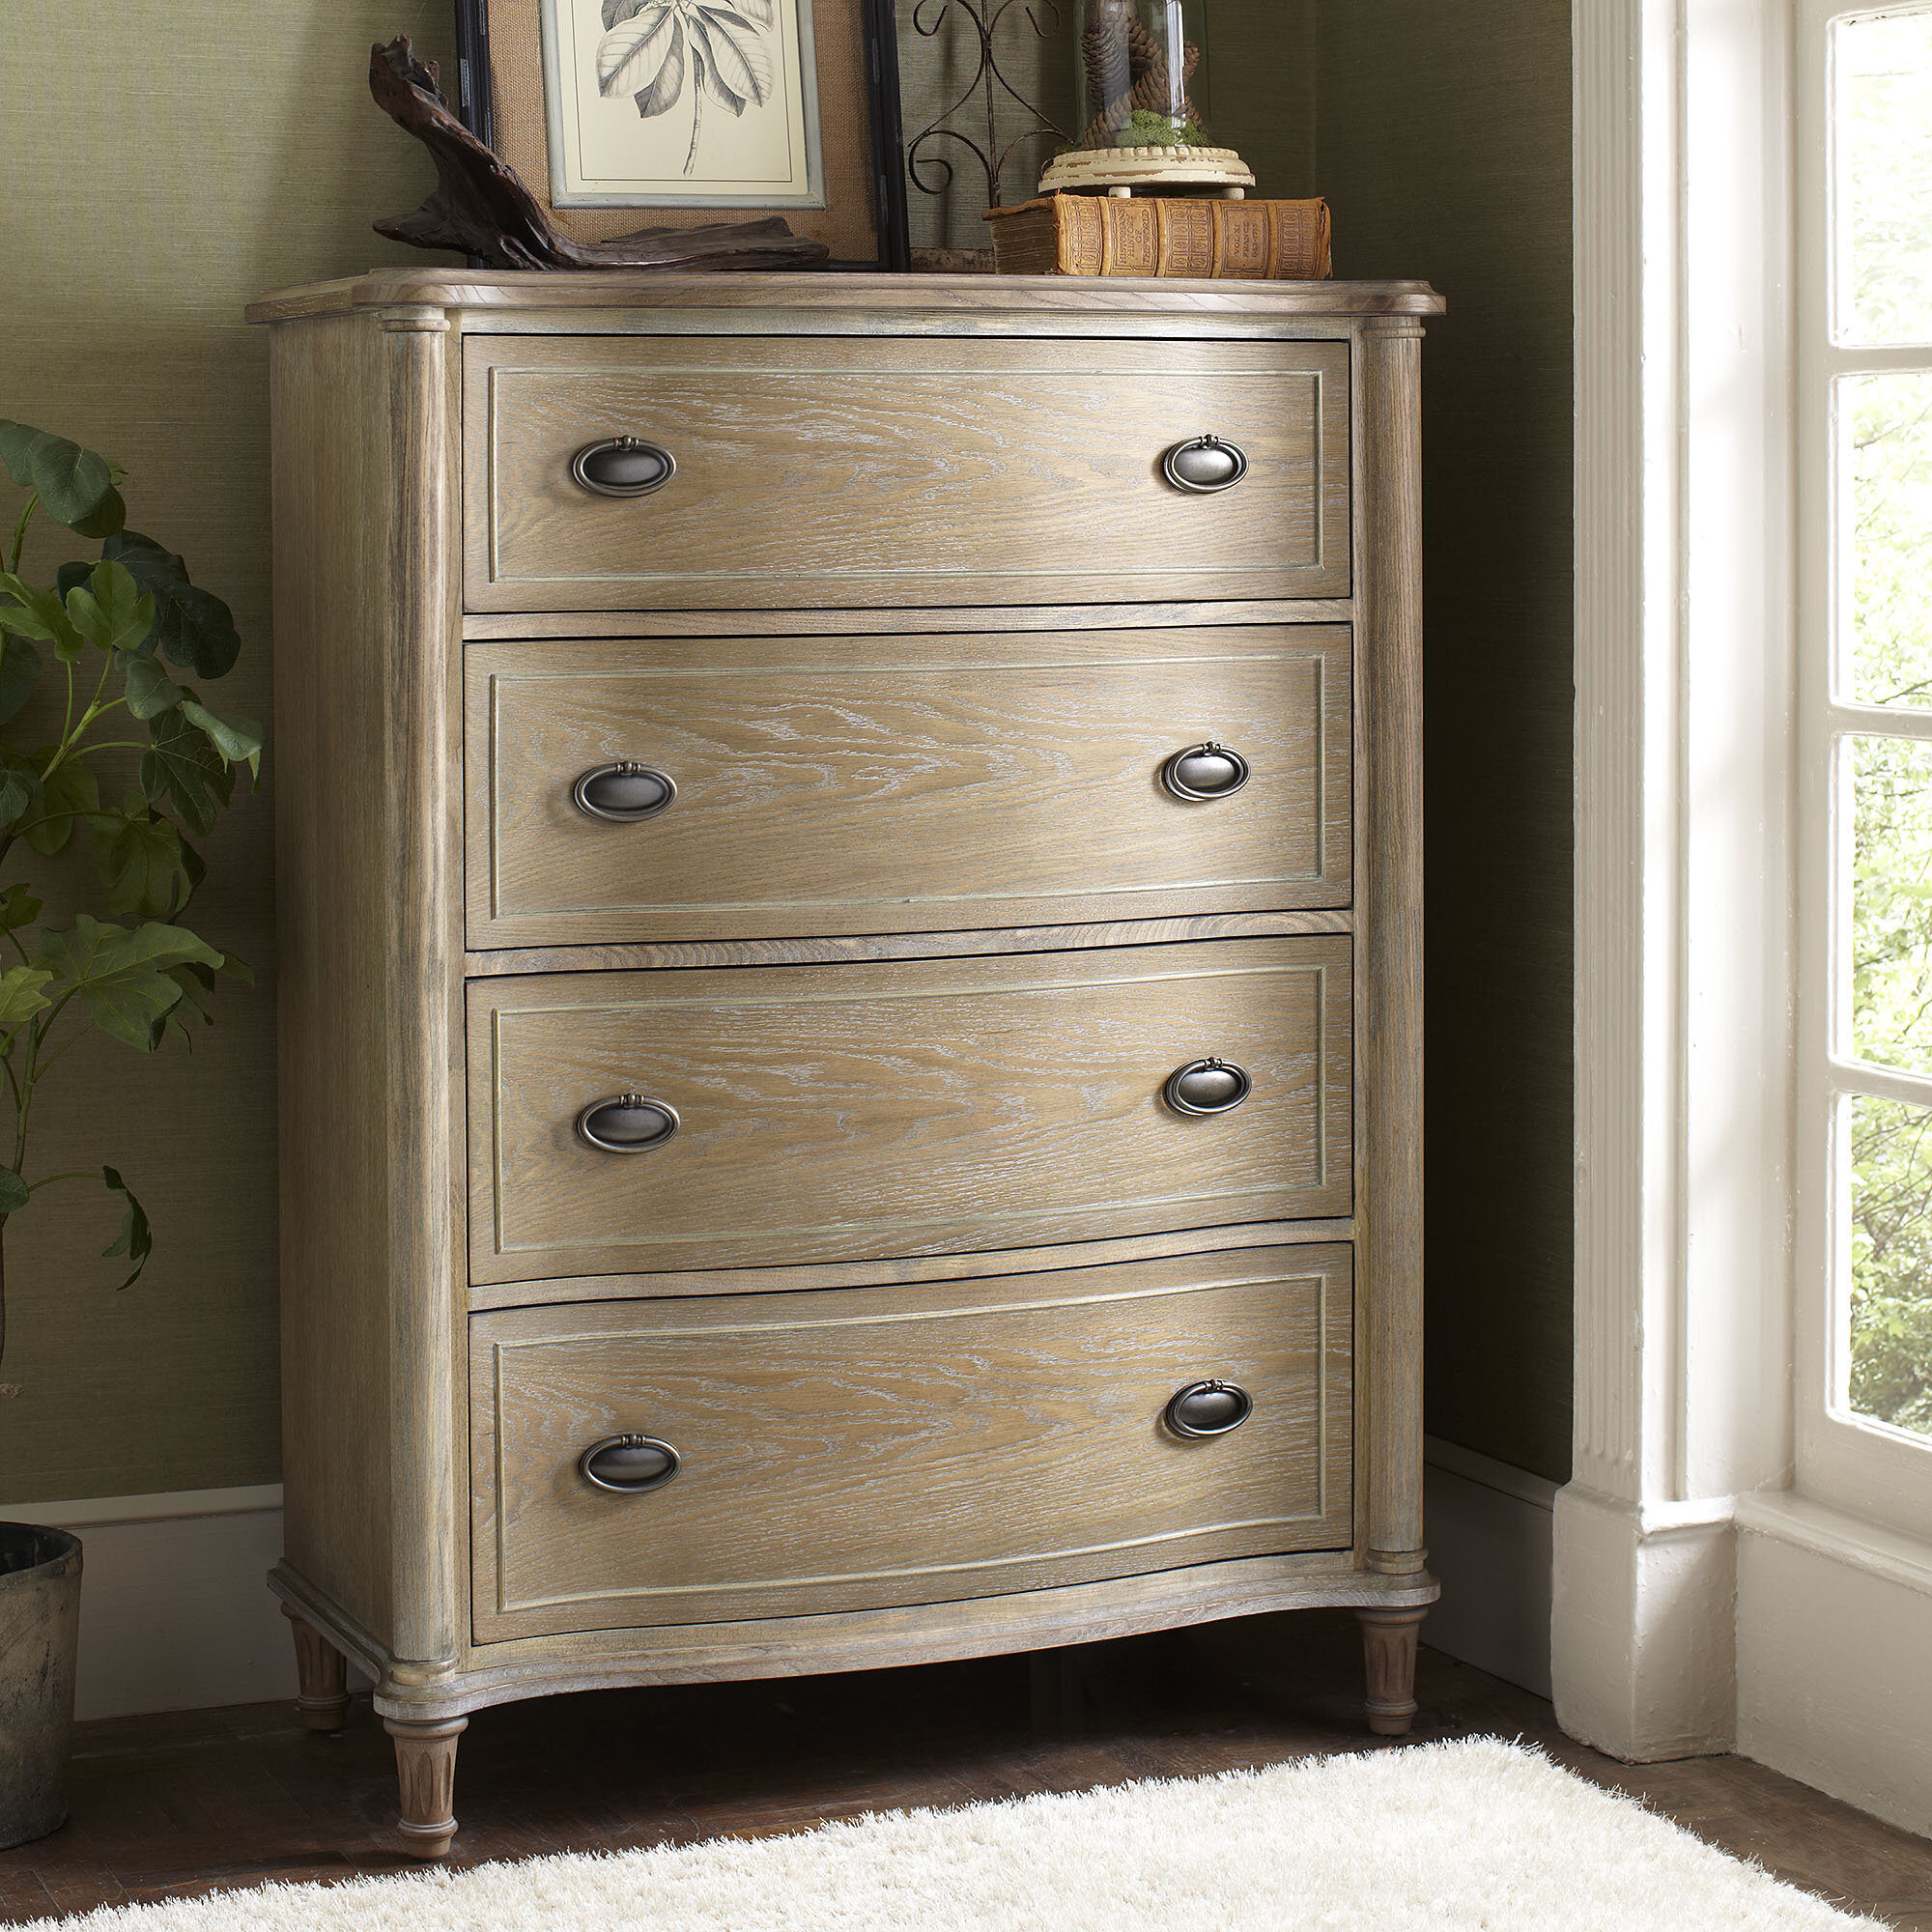 cupboard products rooms country drawer furniture style collections maxi all chest of drawers retro bedroom white